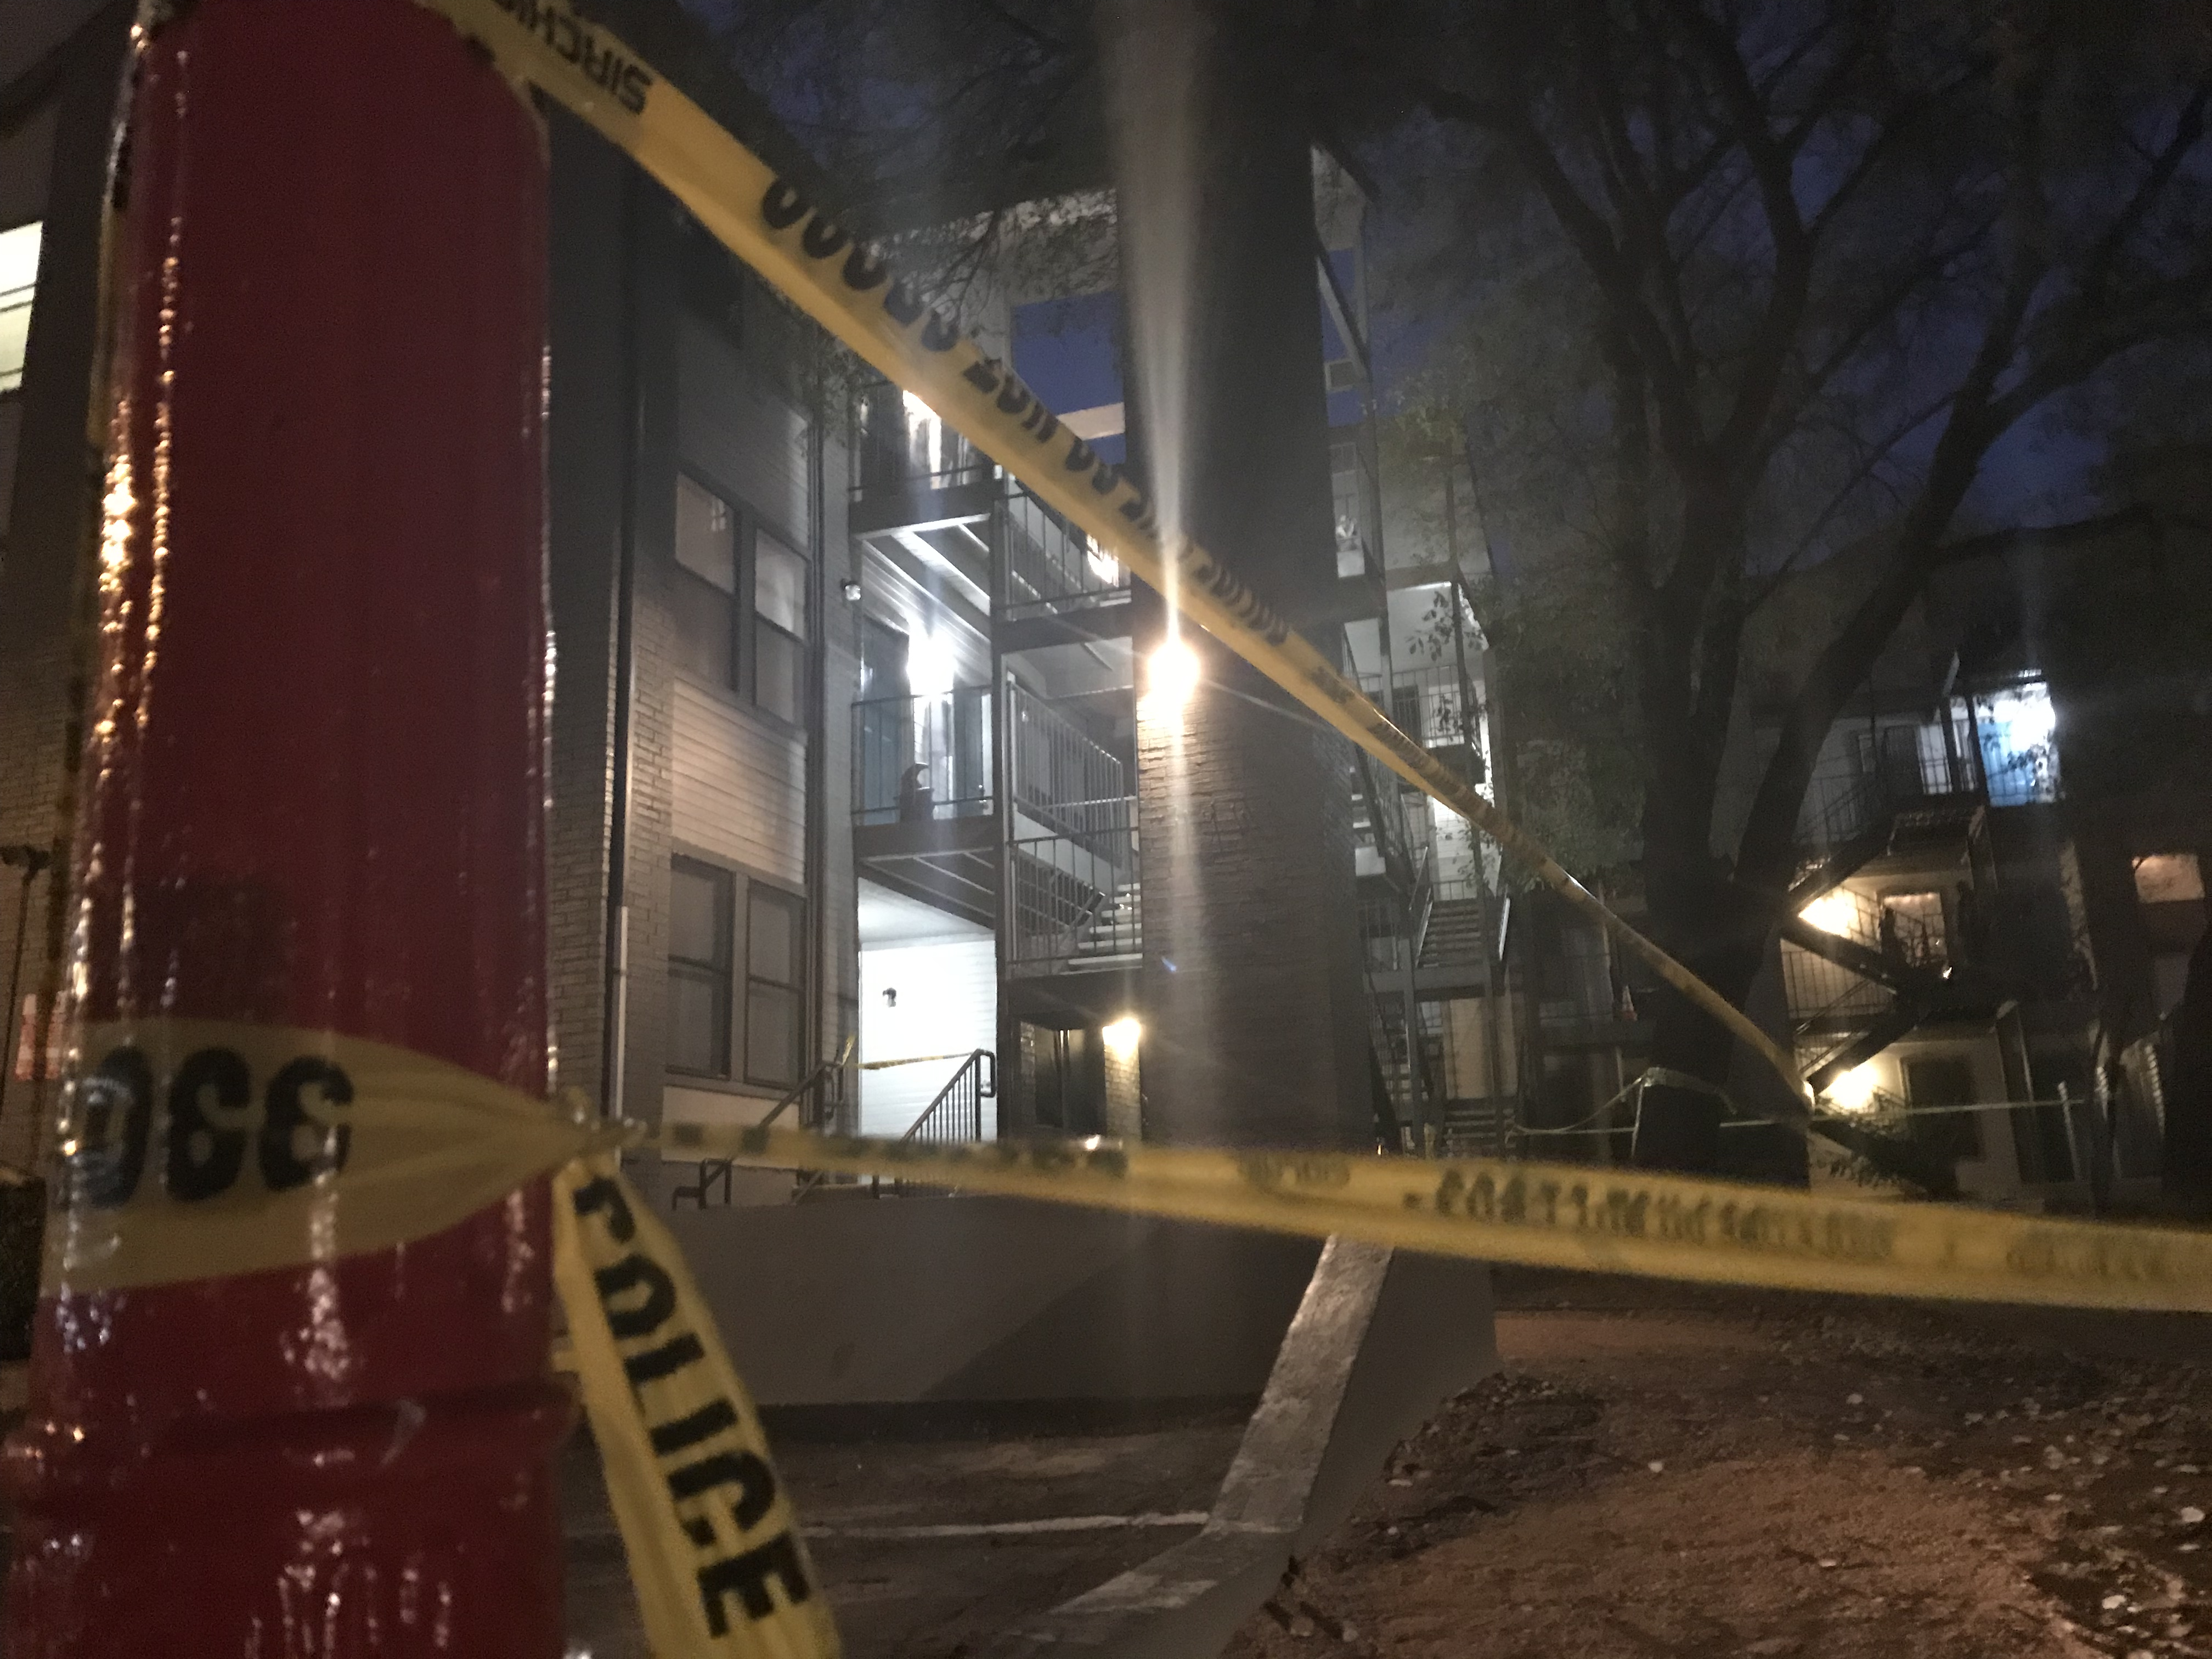 Man shot at an apartment complex at 6408 Burns St. in central Austin on Dec. 13, 2017. (KXAN Photo/Andrew Choat)